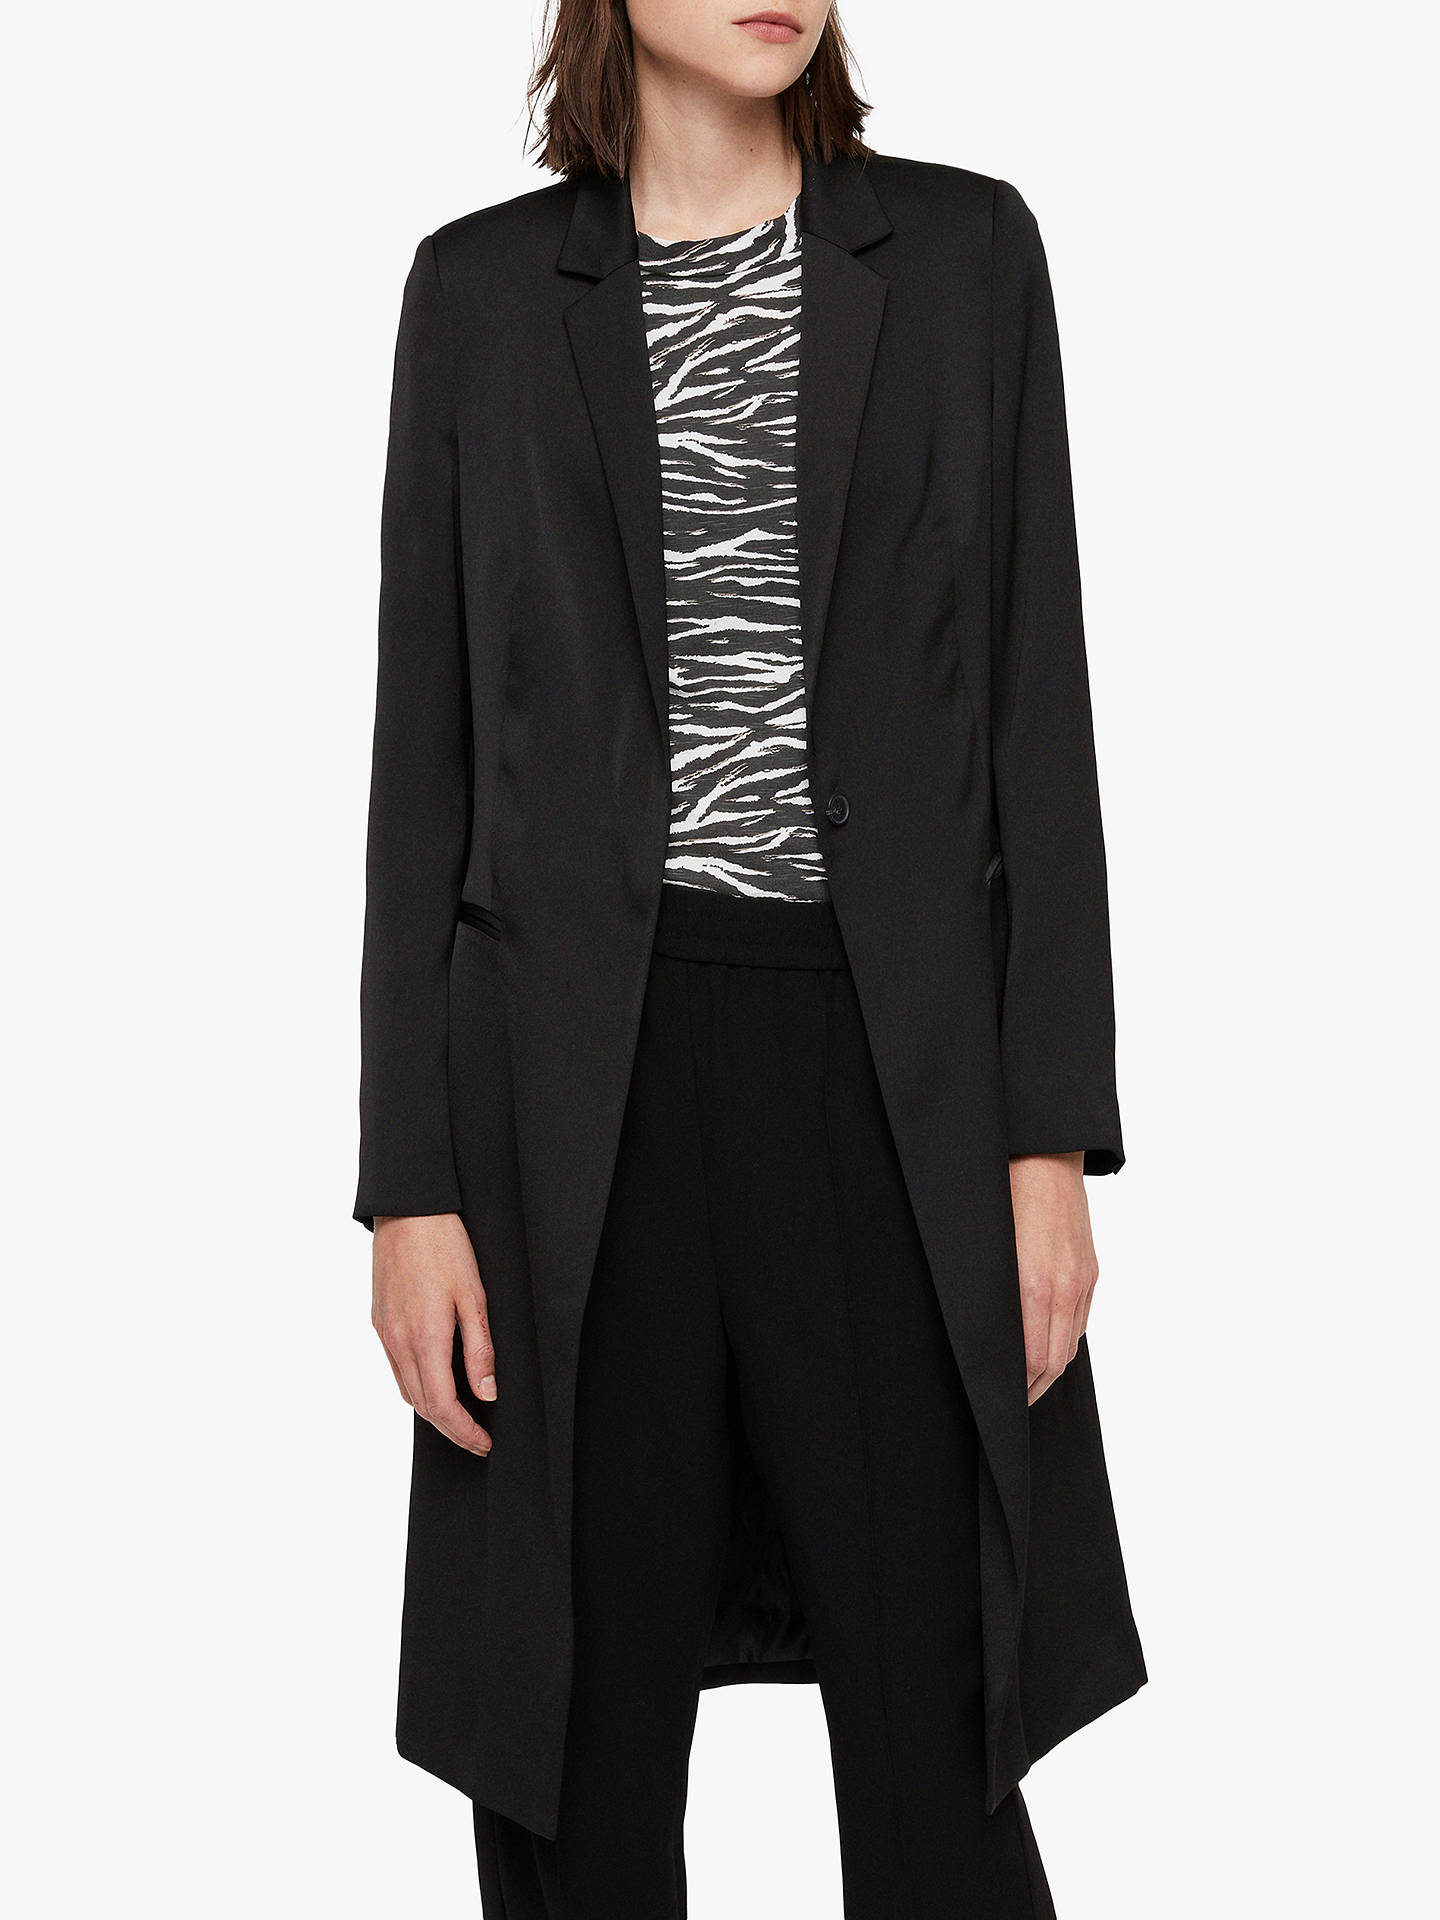 All Saints Nehru Satin Tailored Coat, Black by All Saints